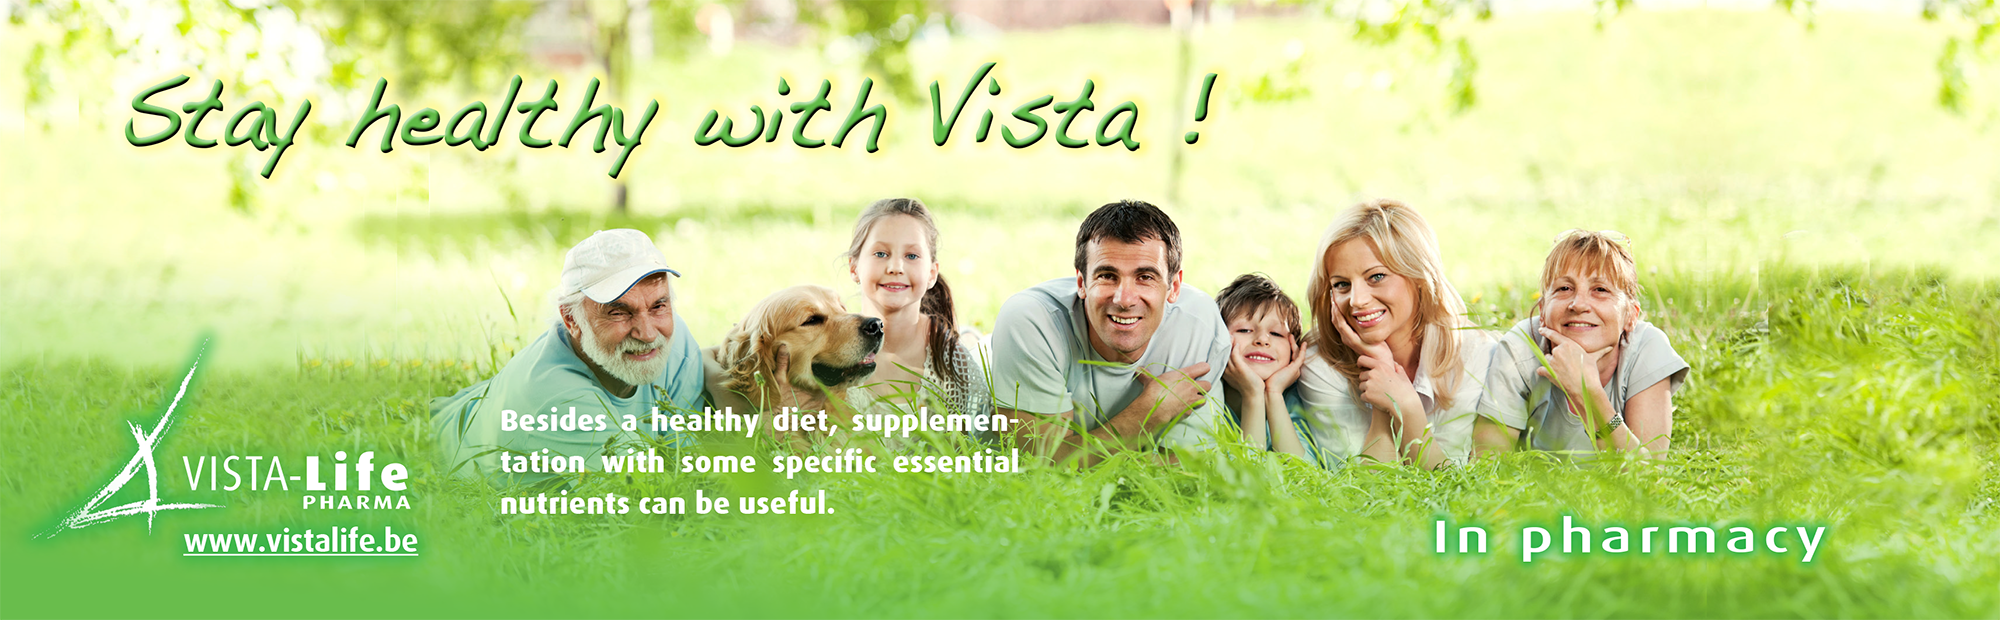 vista-life-pharma-(topbanner)2GB